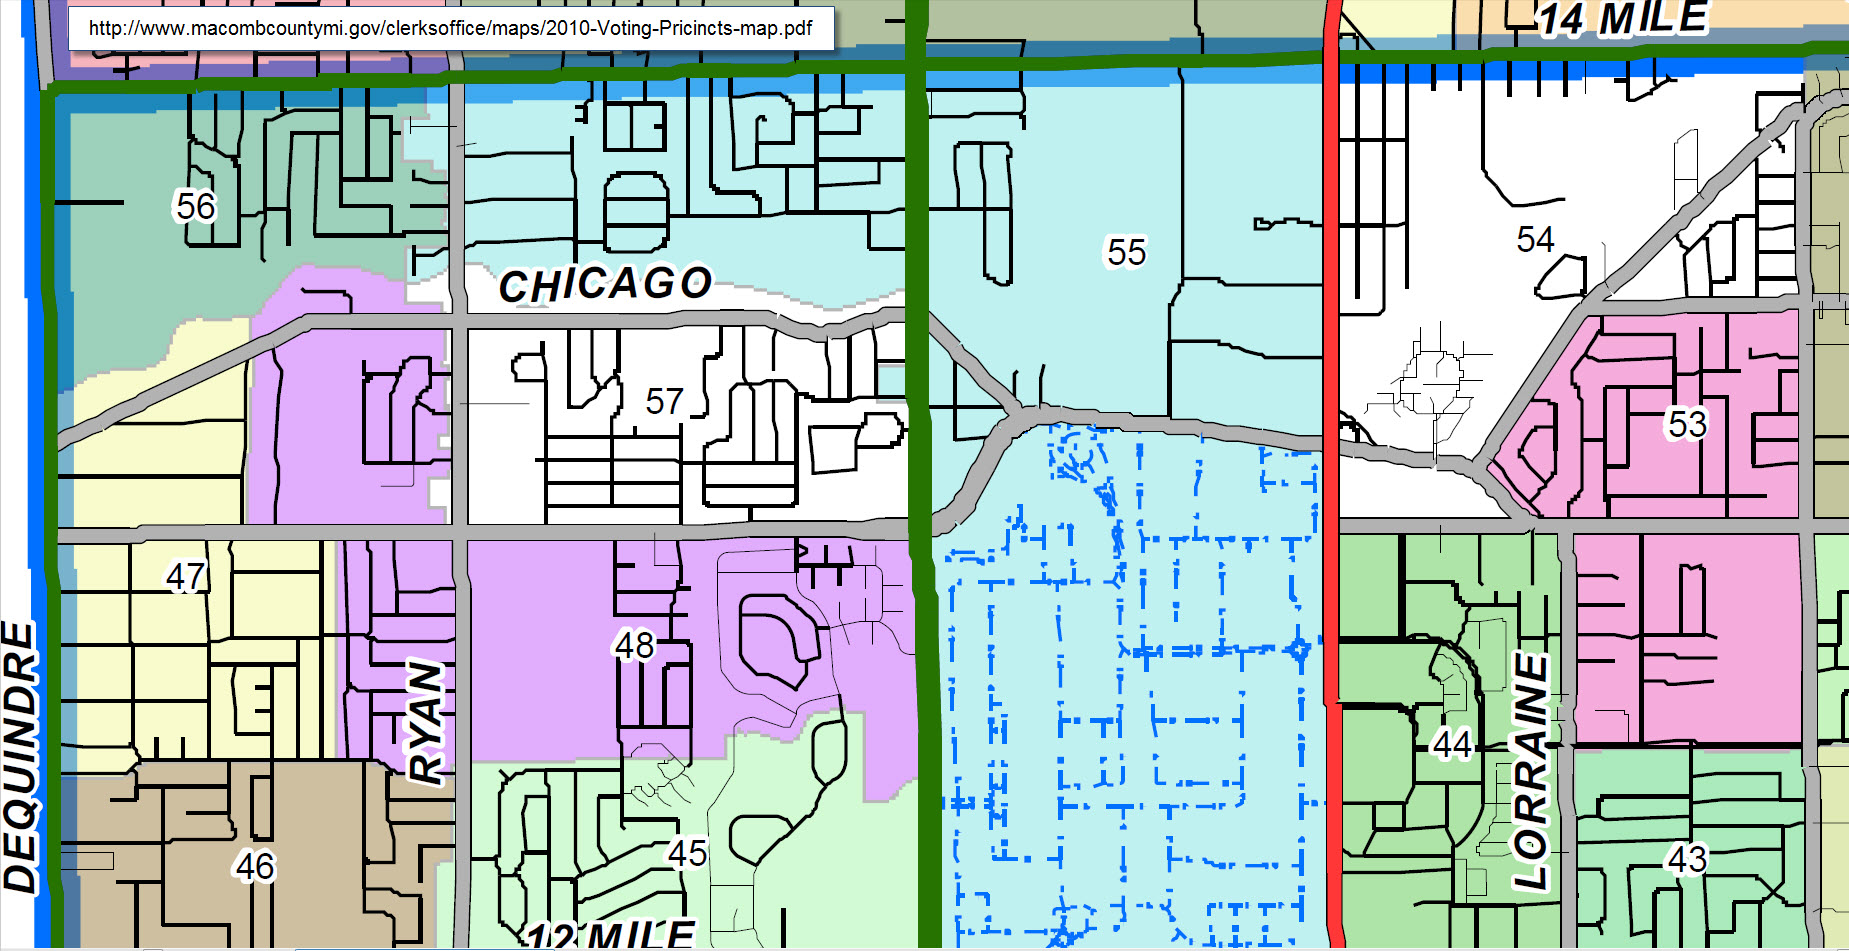 city of warren precincts and districts maps red run. Black Bedroom Furniture Sets. Home Design Ideas